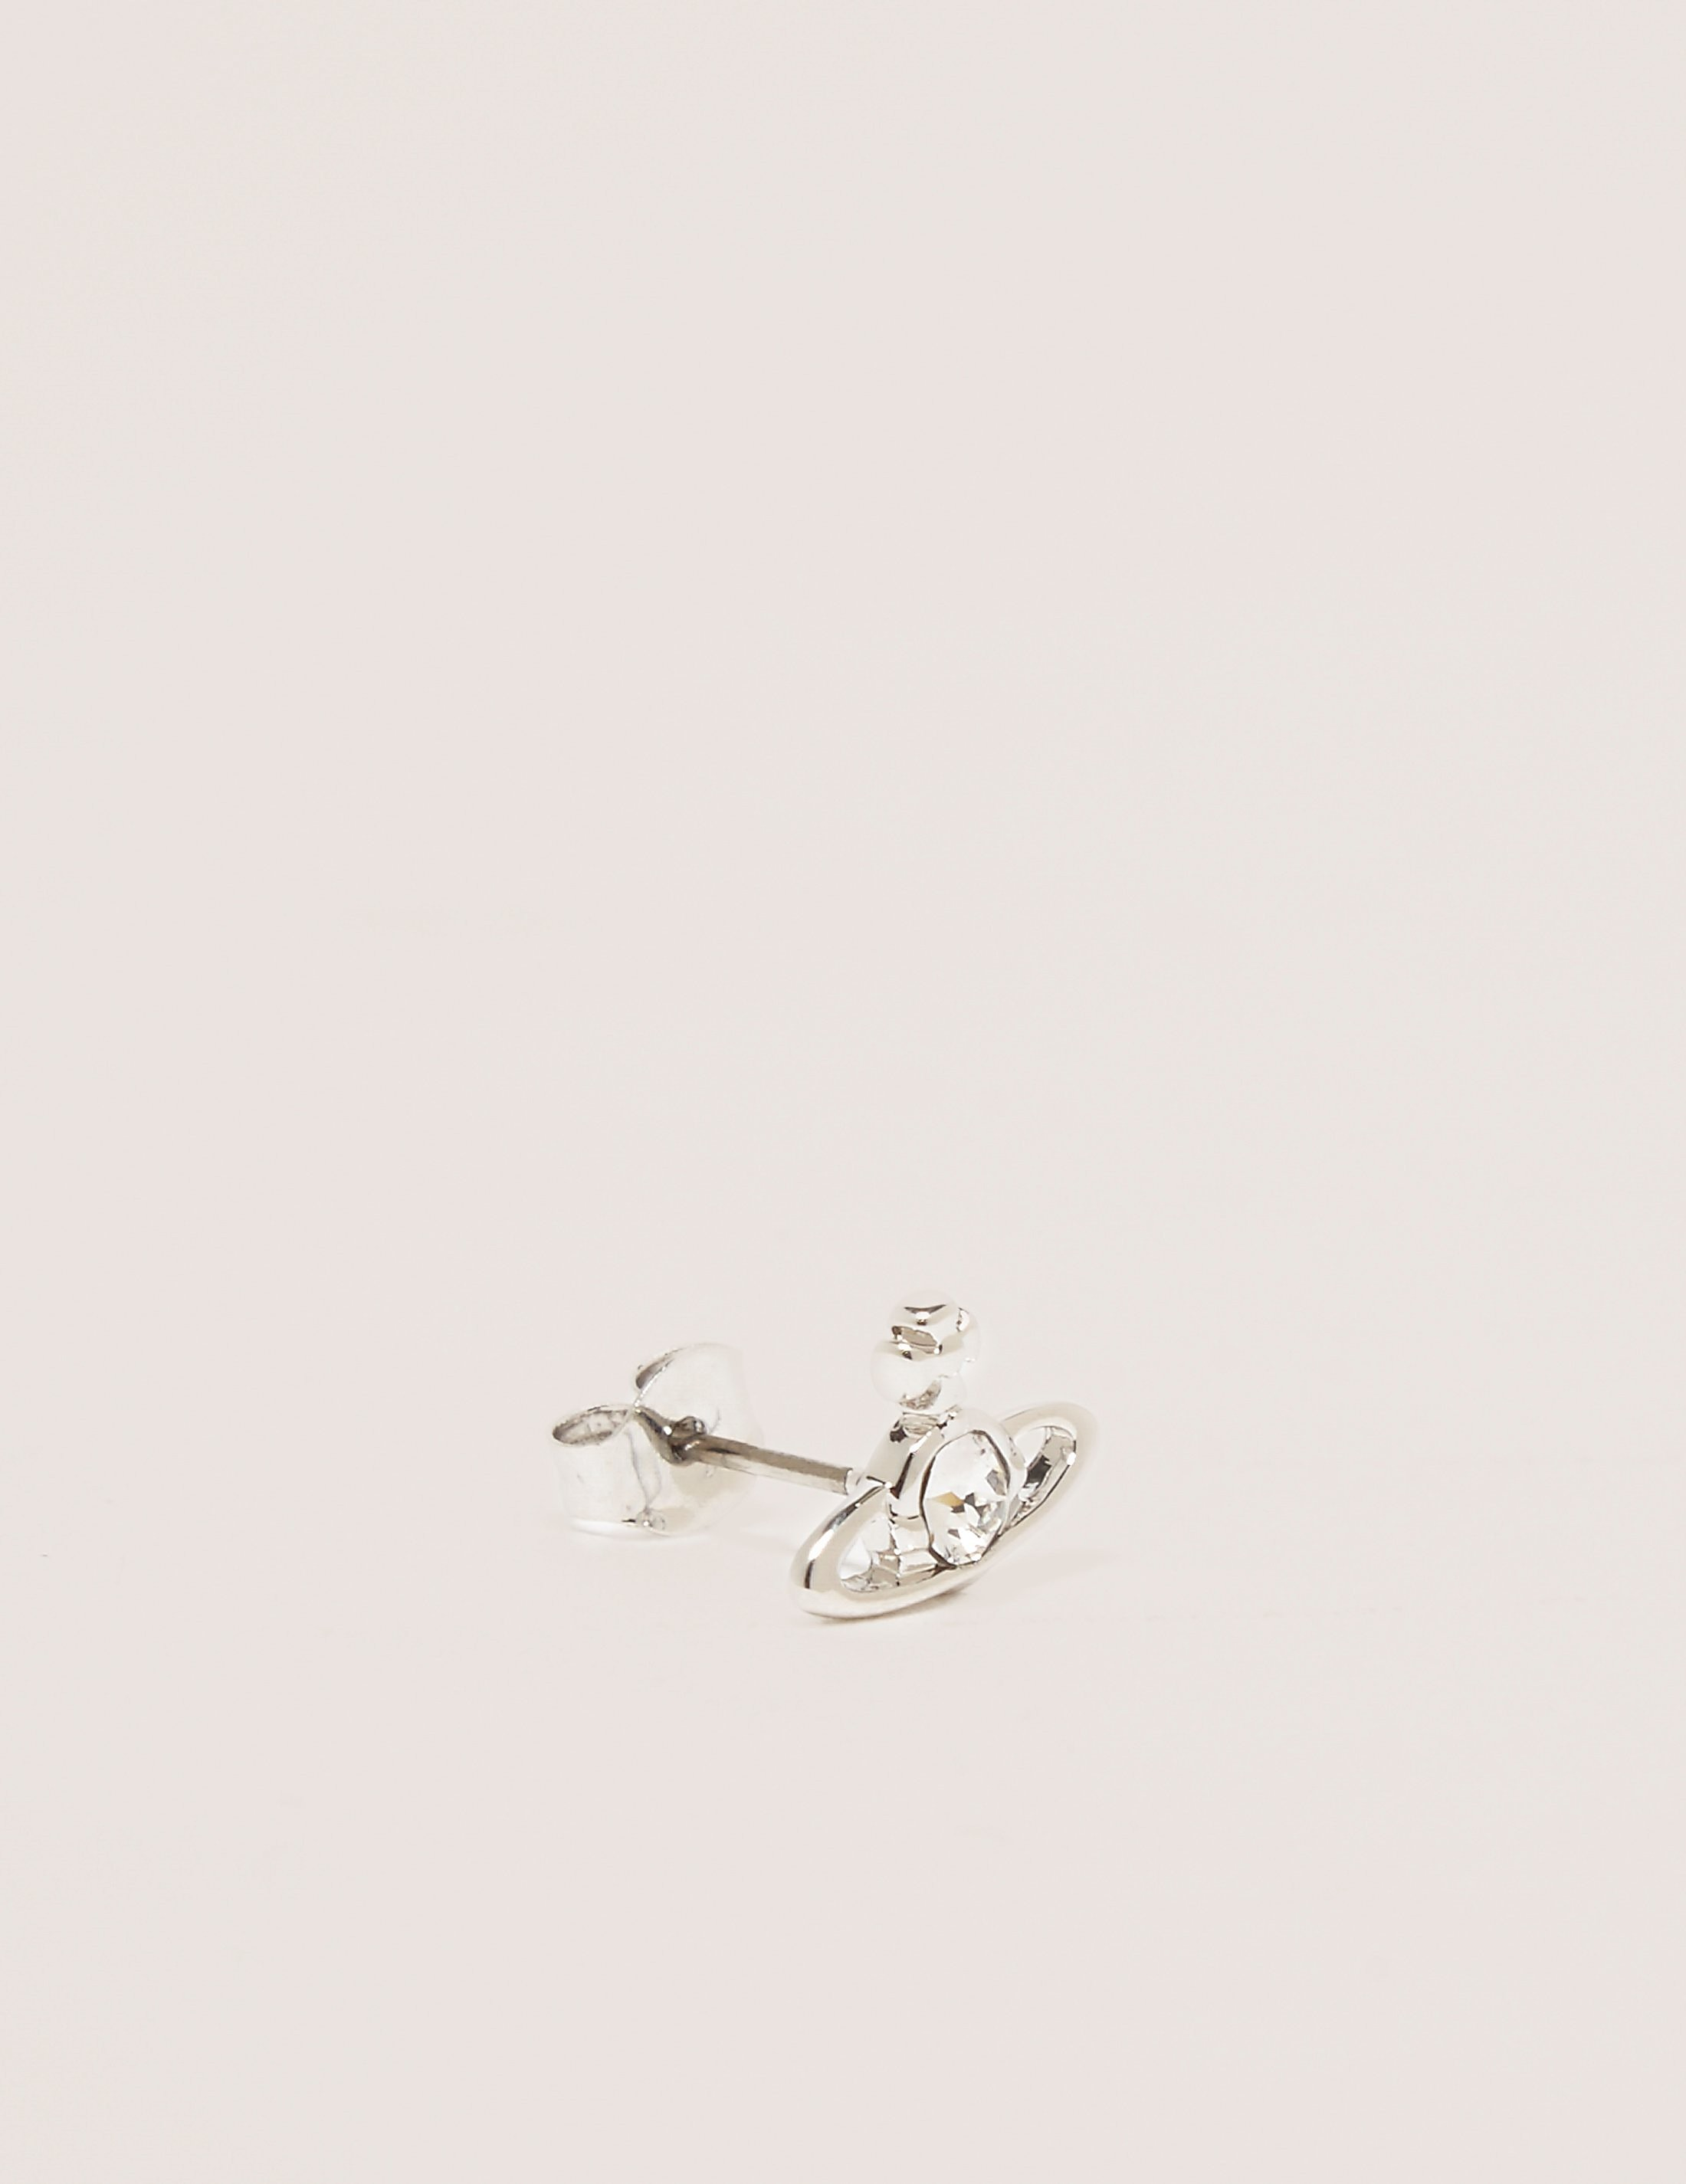 Vivienne Westwood Nano Solitare Earrings